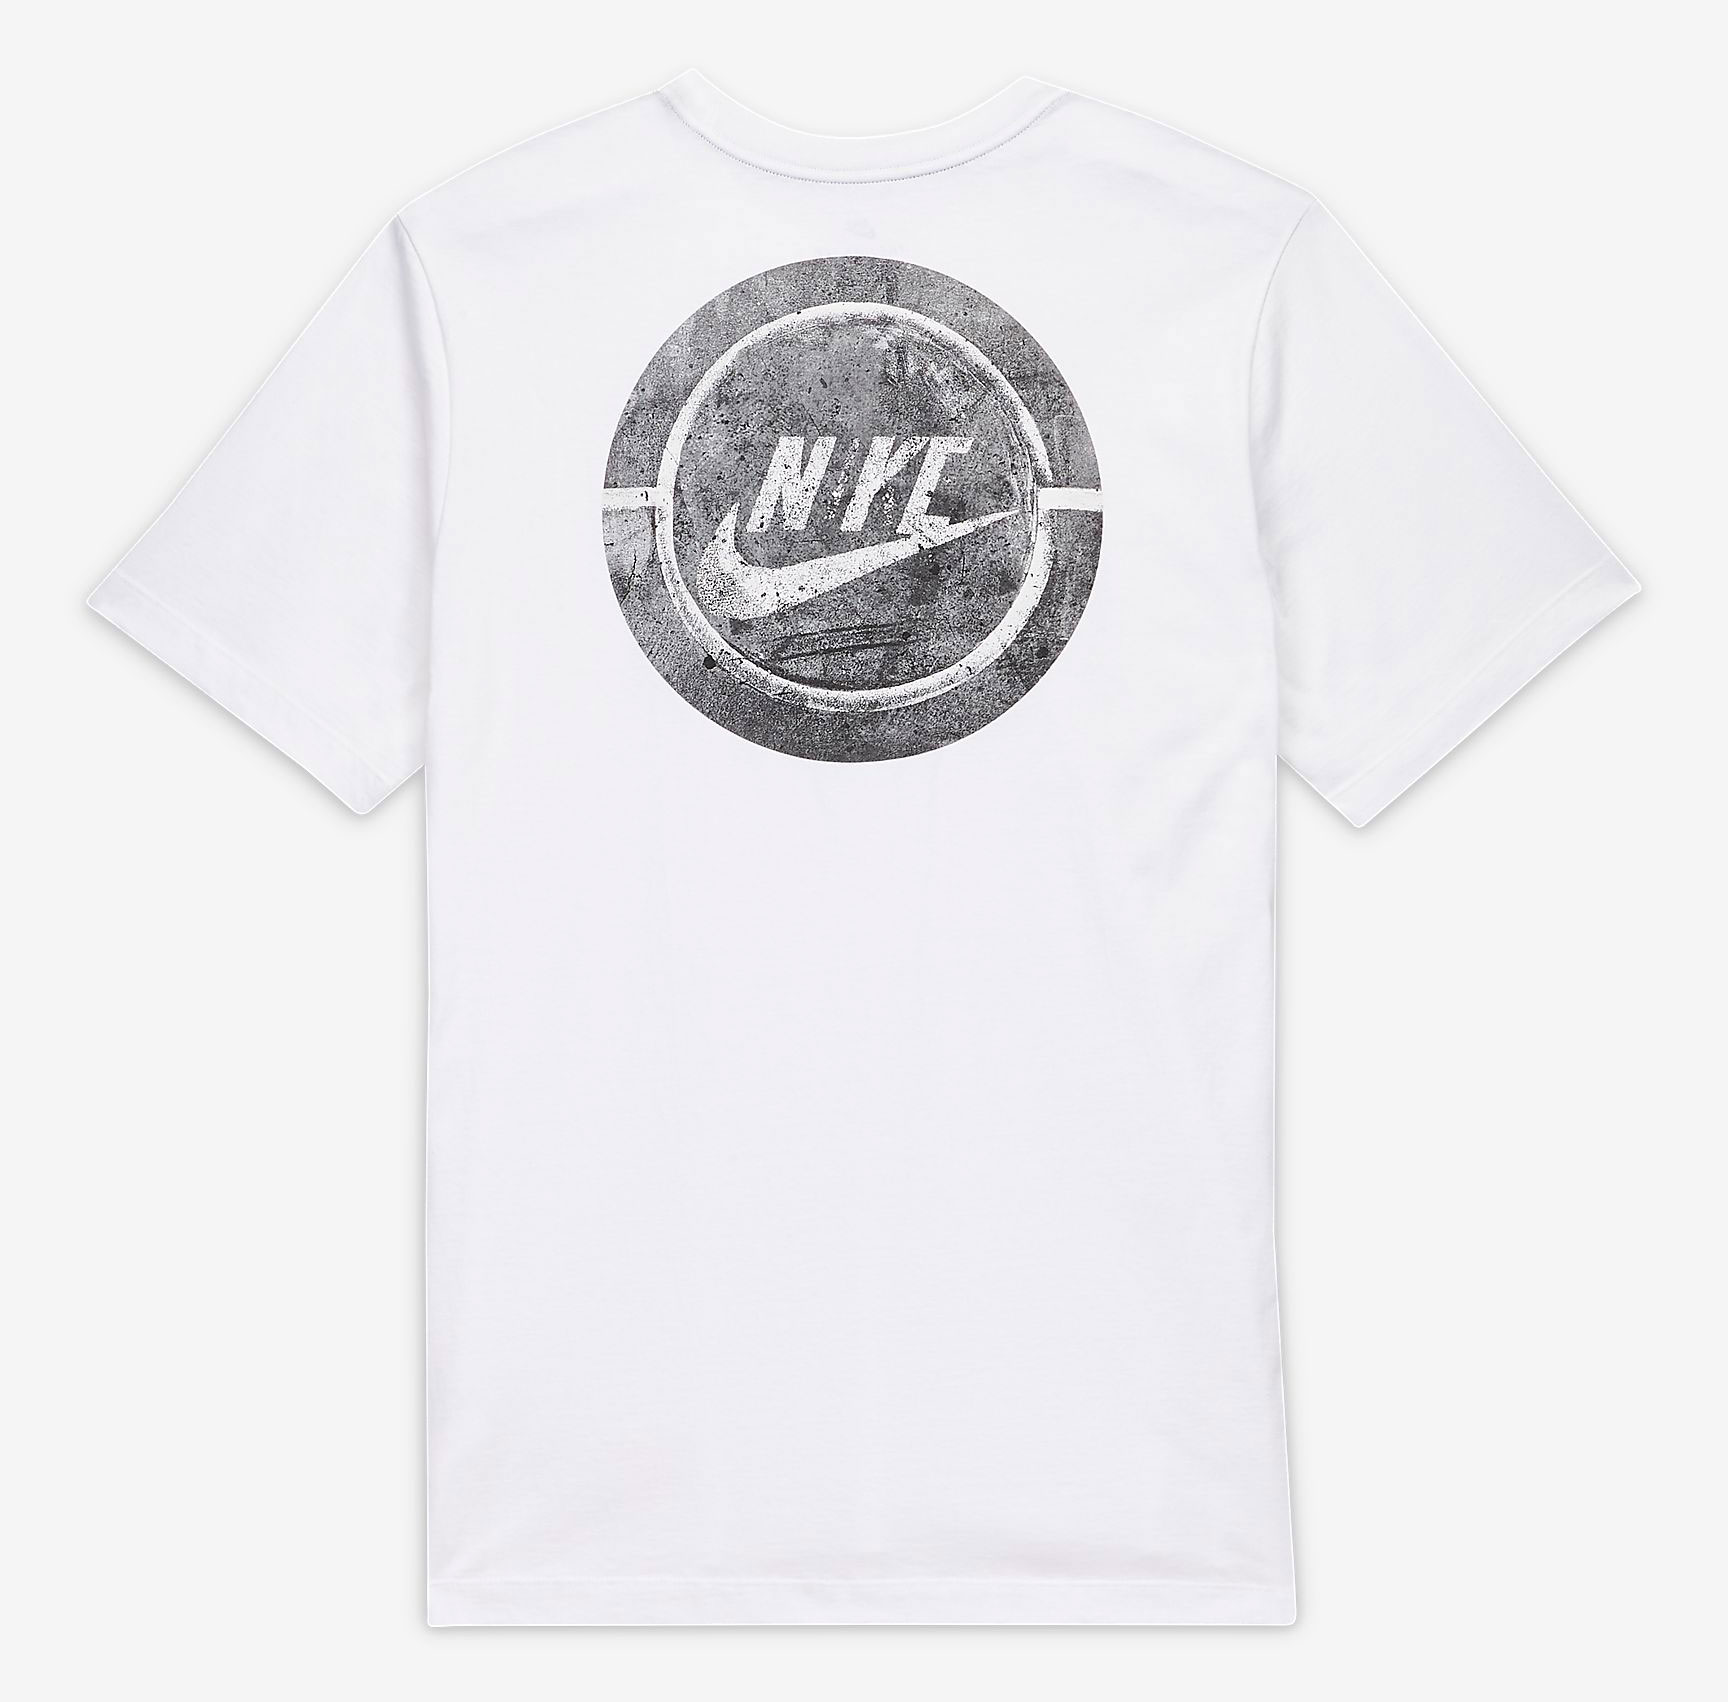 nike-air-force-1-ny-vs-ny-shirt-match-white-2